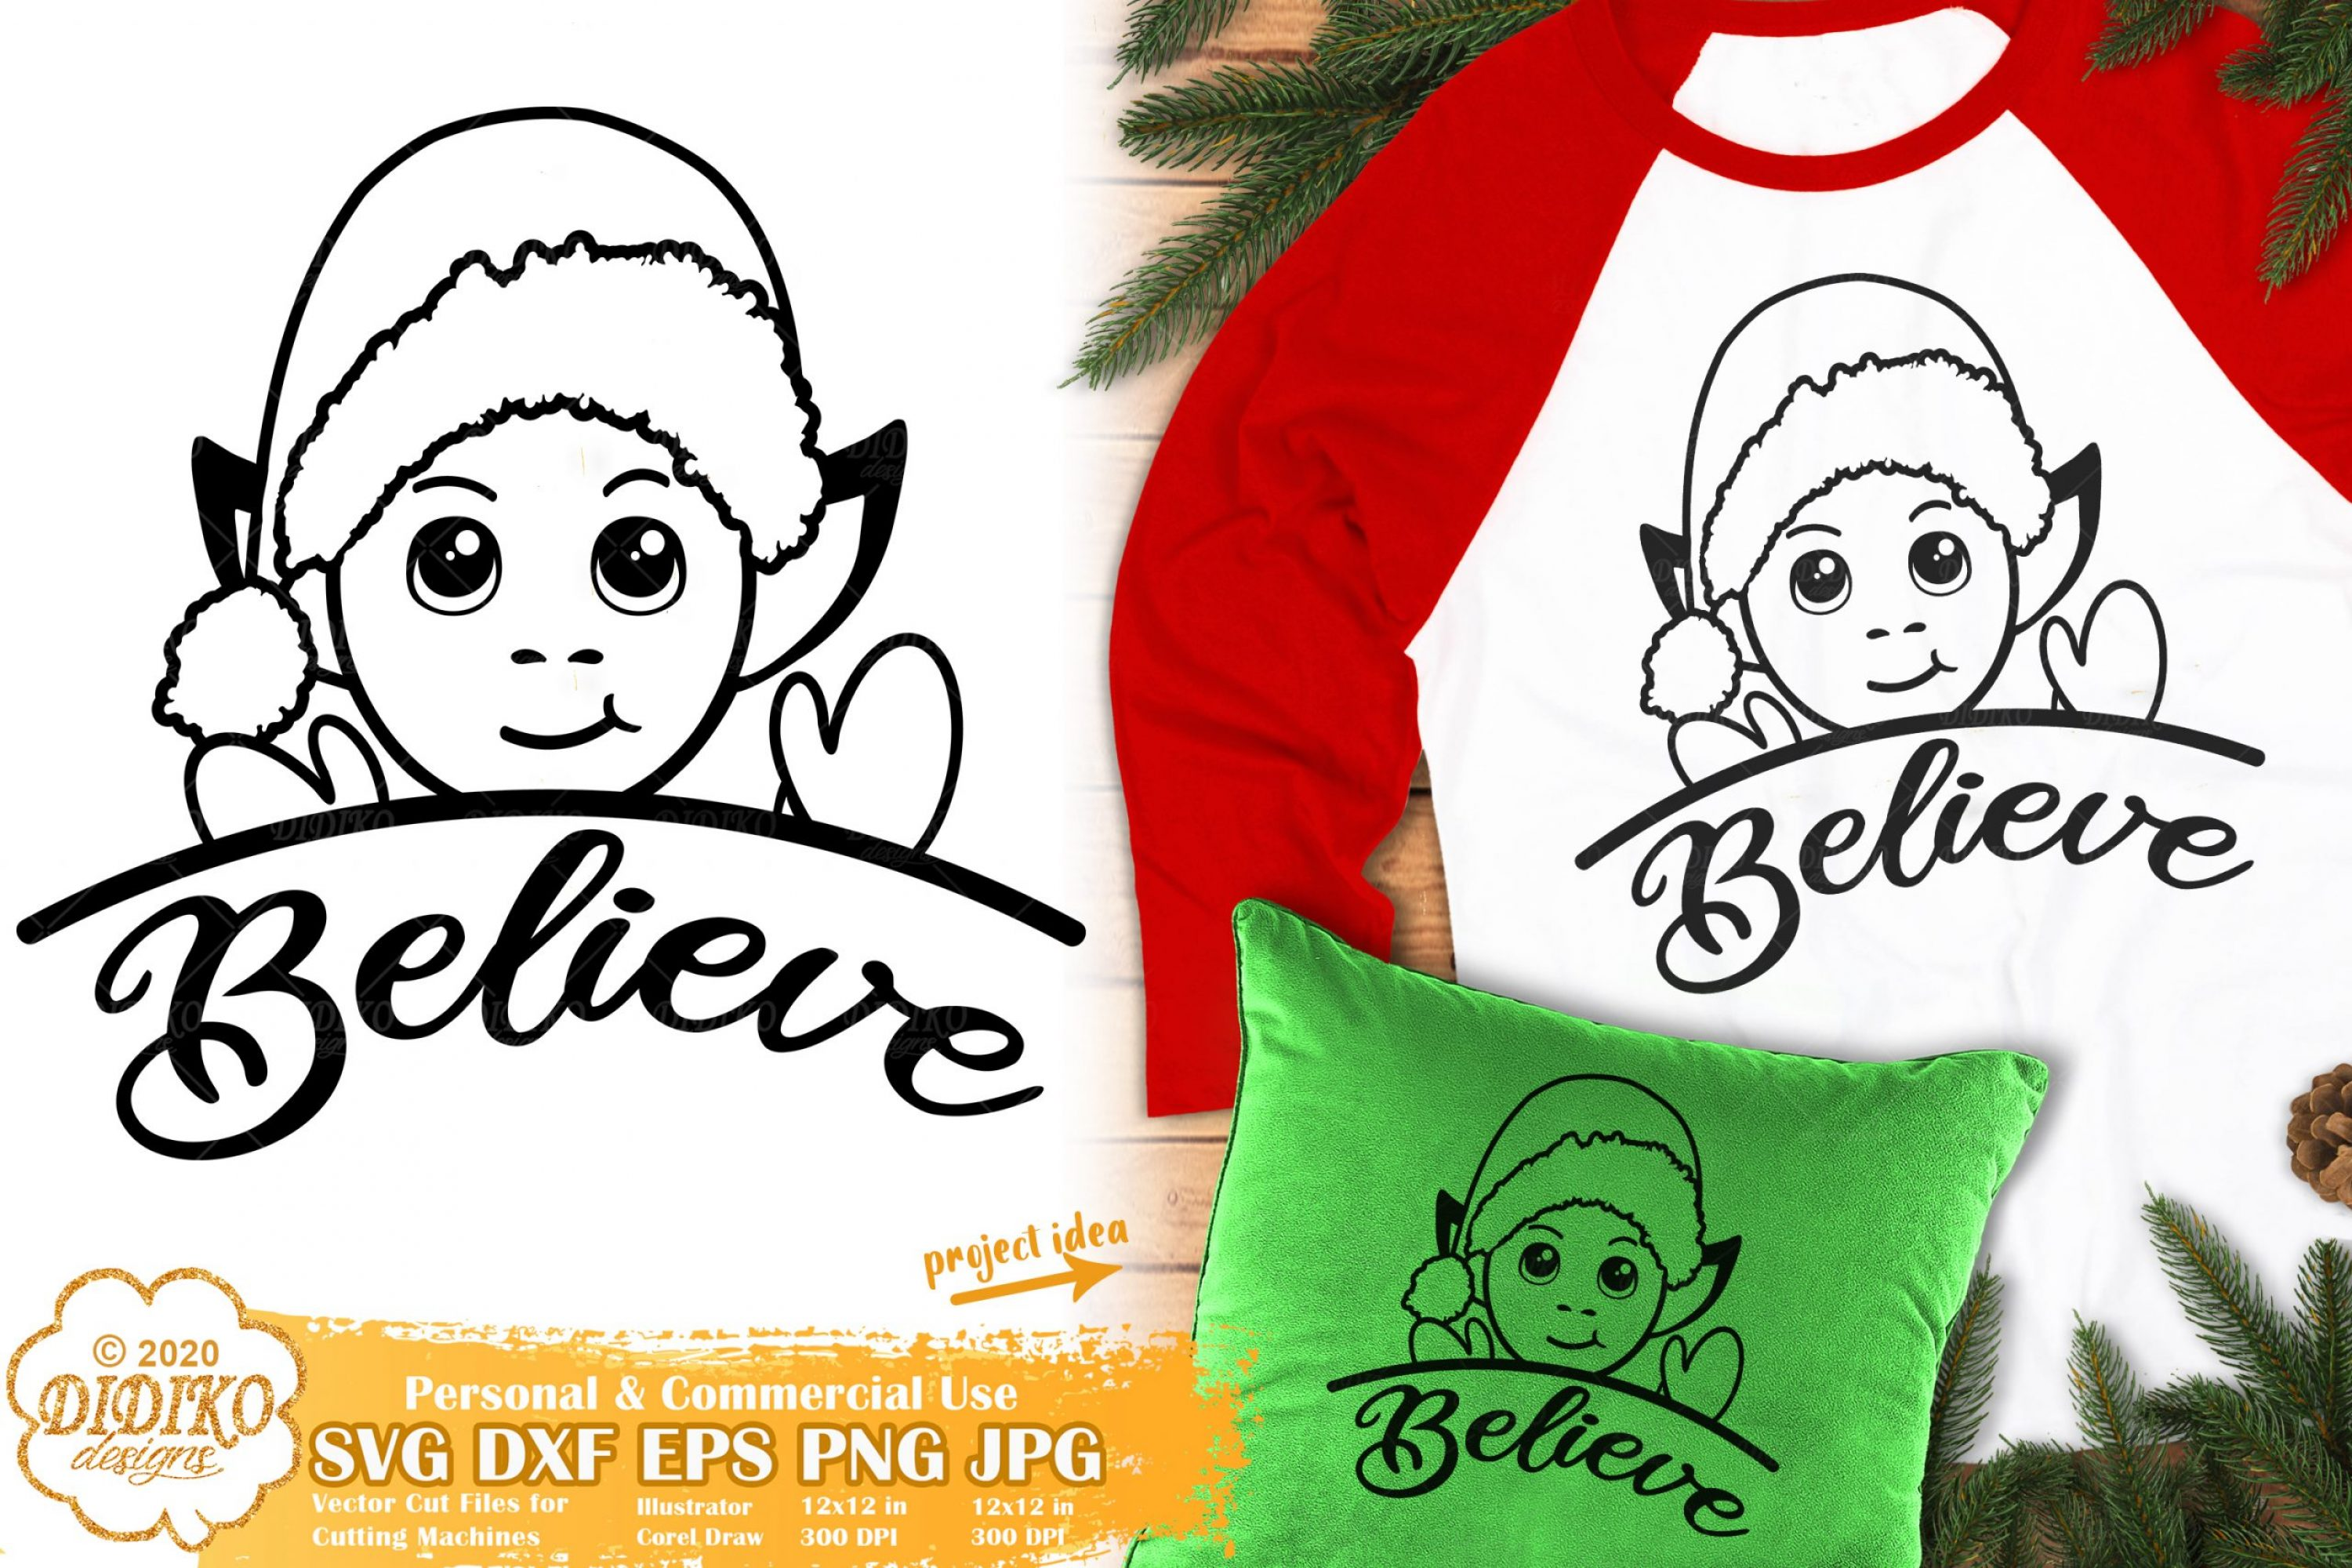 Cute Elf SVG | Peek a Boo SVG | Christmas SVG Files